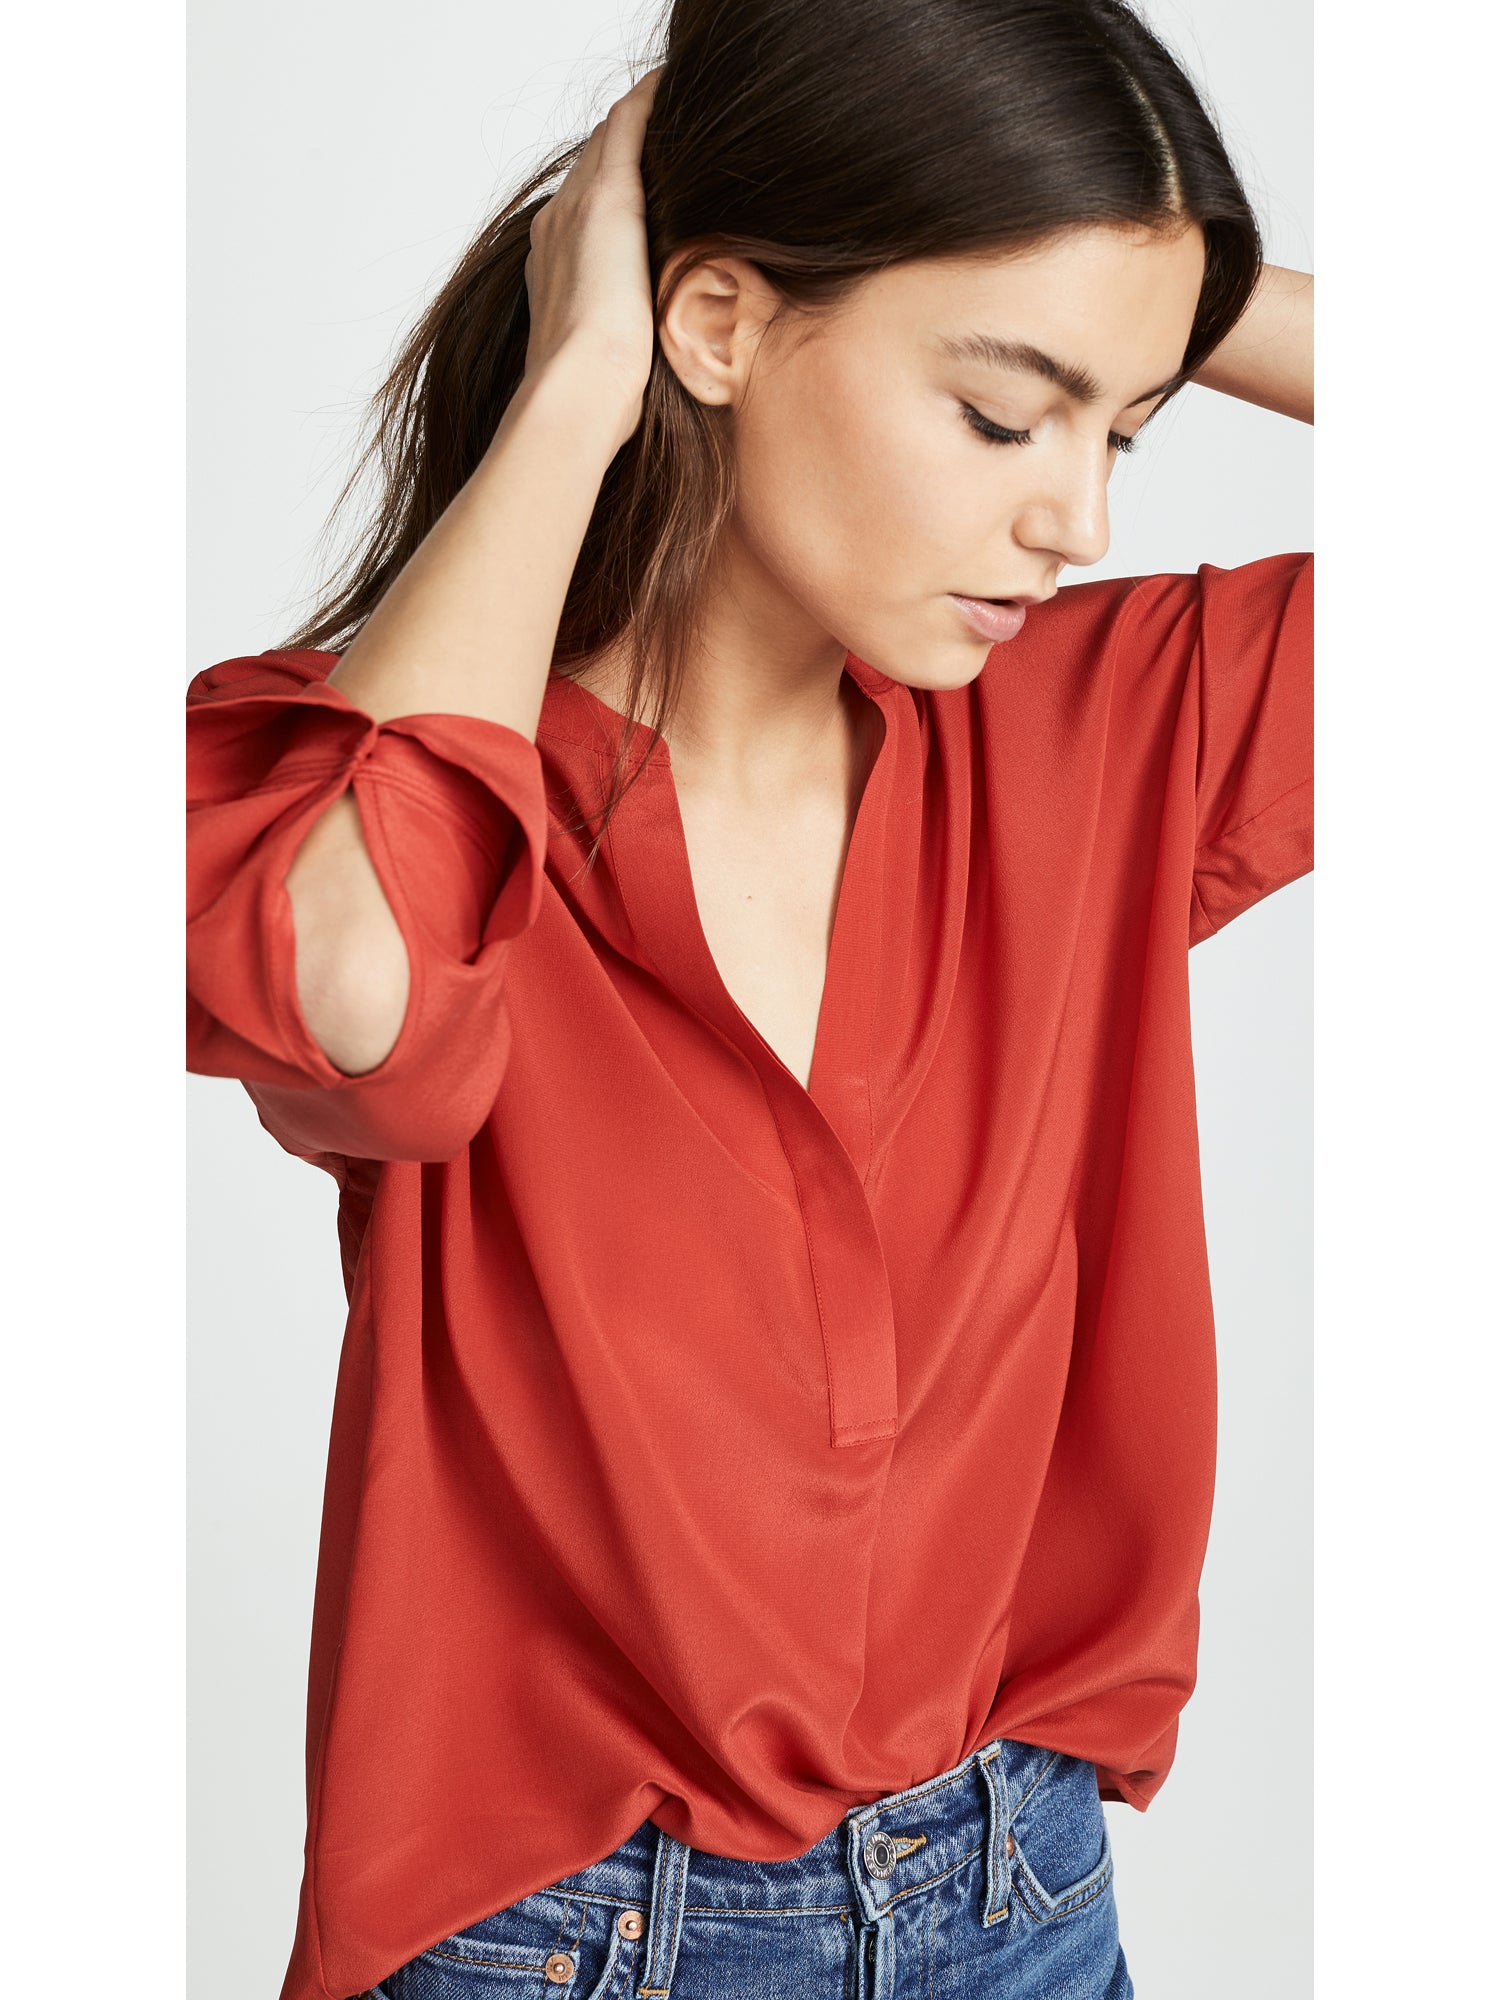 Vince Silk Band Collar Top - Adobe Red | TILDEN